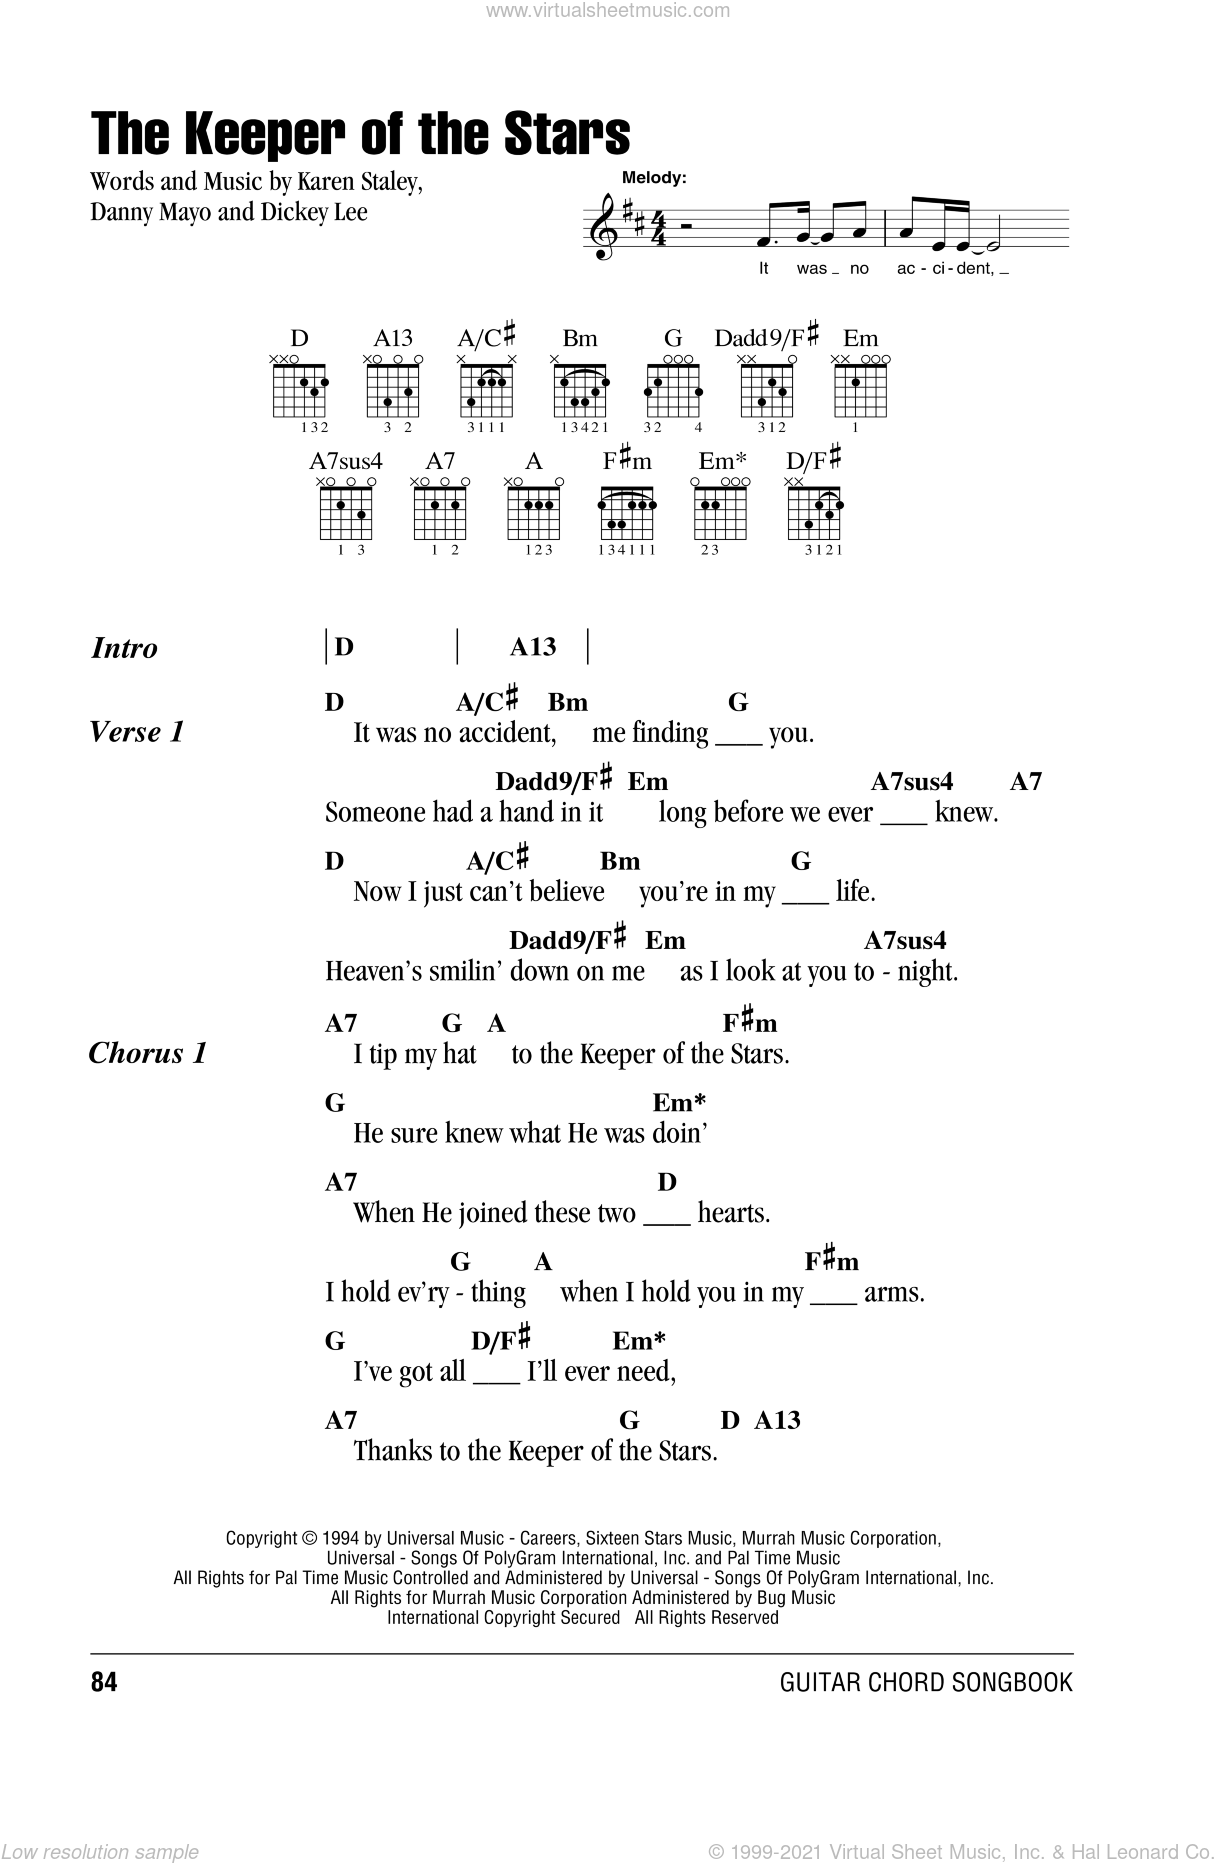 The Keeper Of The Stars sheet music for guitar (chords) by Tracy Byrd, Danny Mayo, Dickey Lee and Karen Staley, wedding score, intermediate. Score Image Preview.